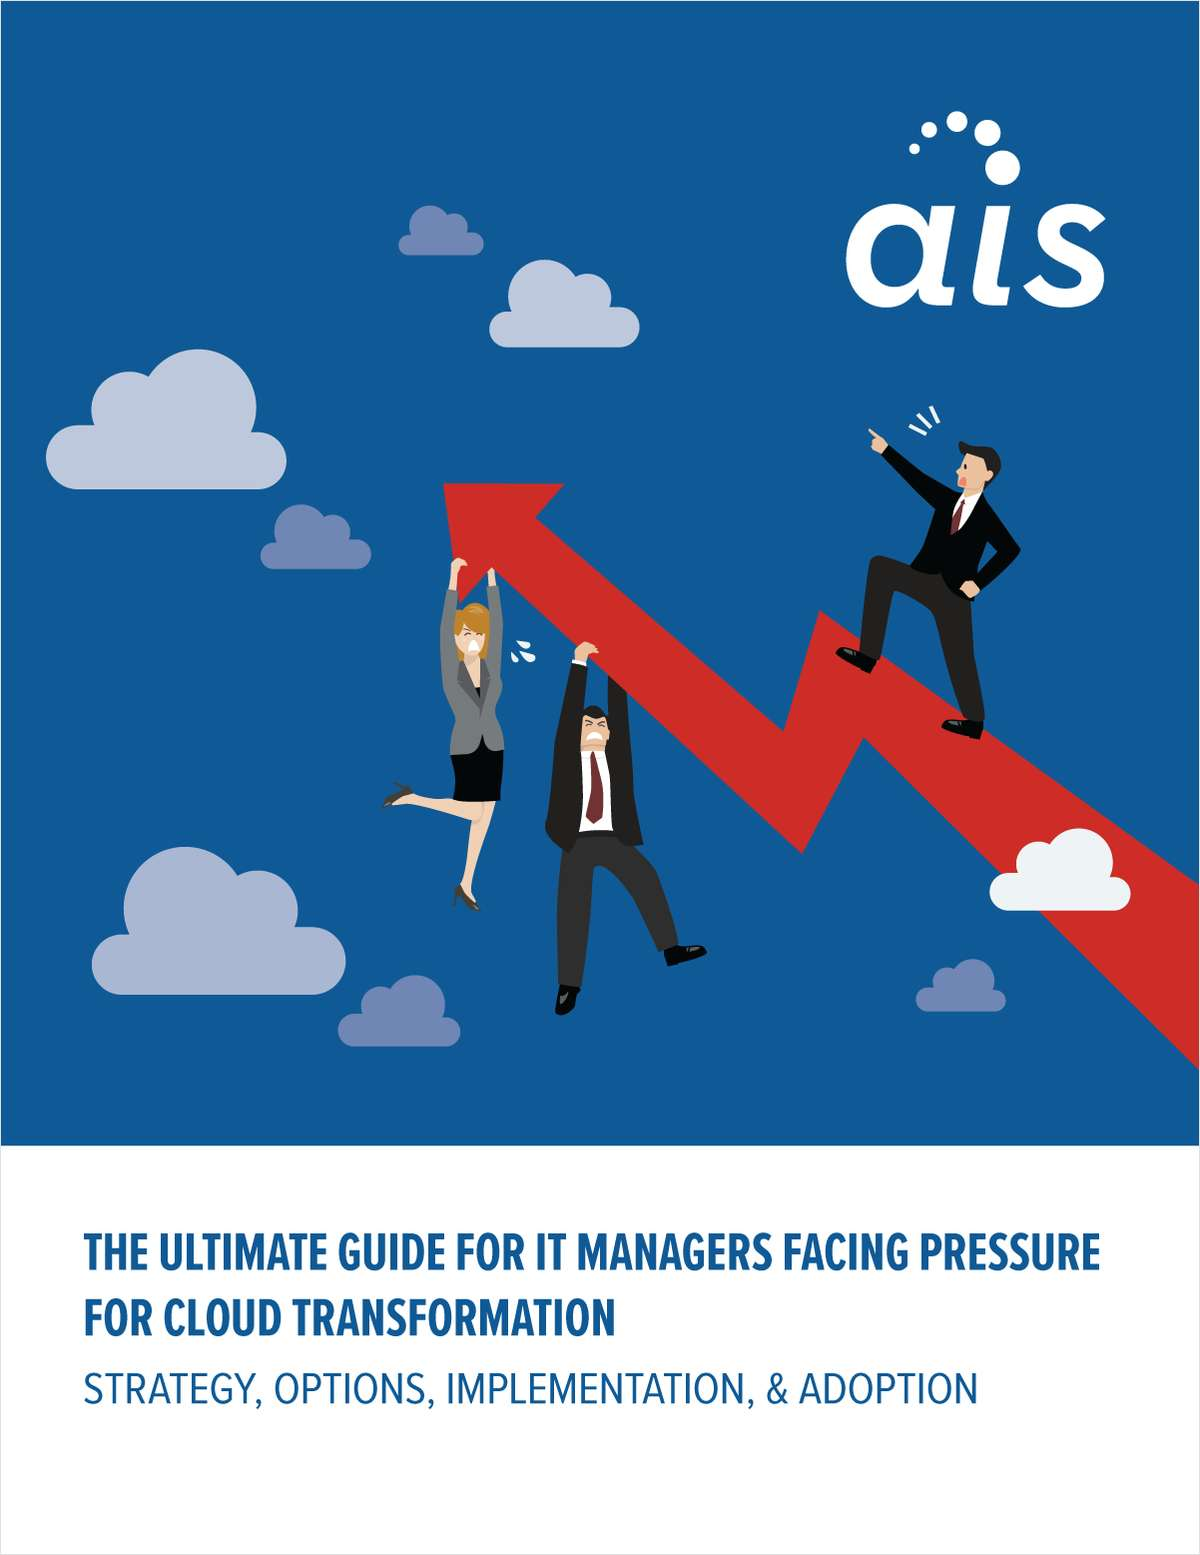 The Ultimate Guide for IT Managers Facing Pressure for Cloud Transformation